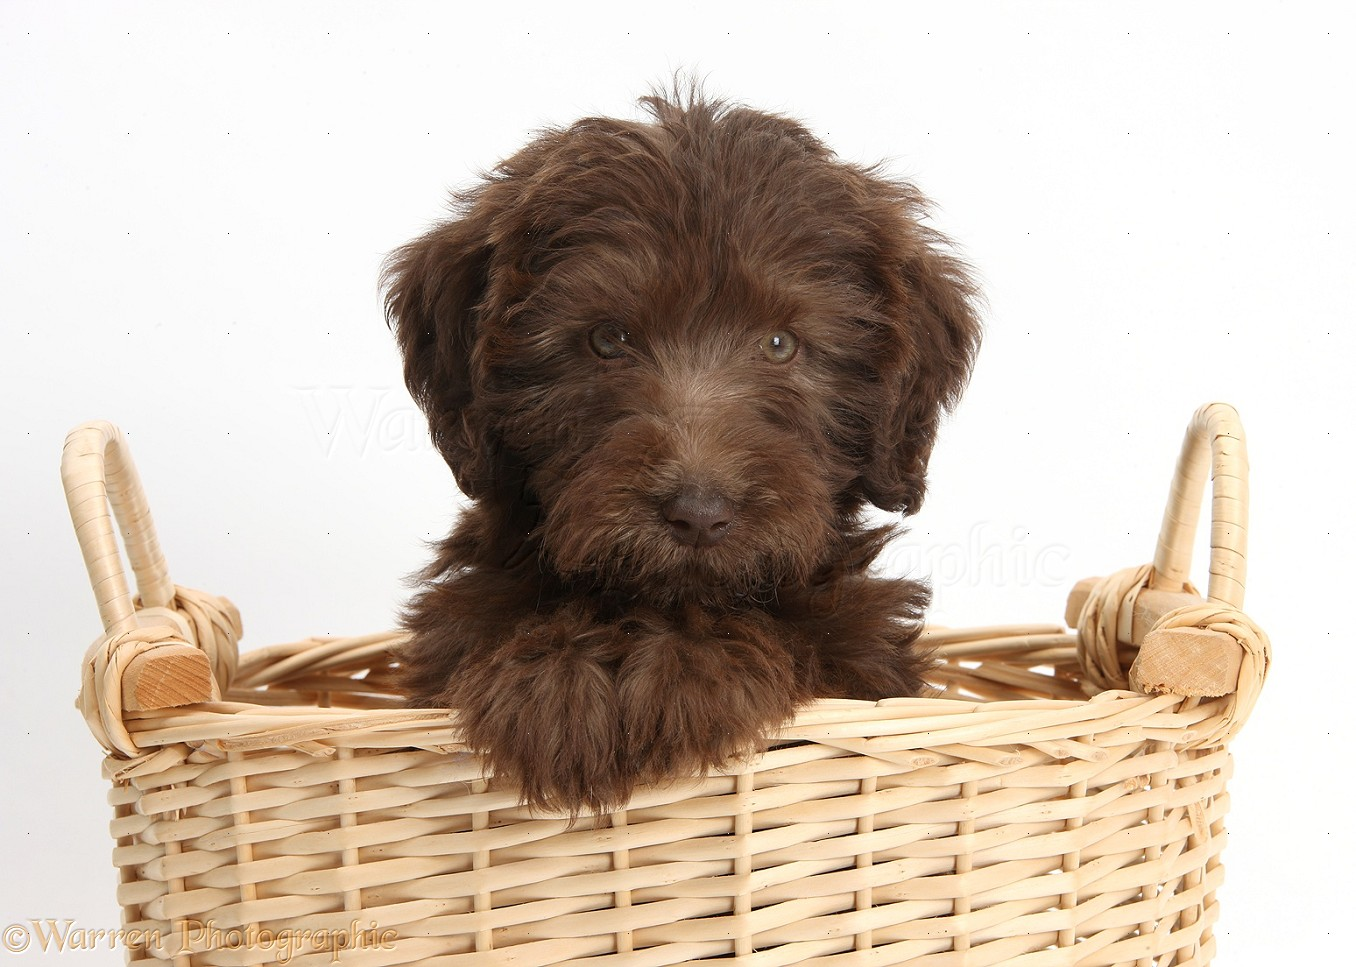 Dog Chocolate Labradoodle Puppy With Sunflower Photo Wp39271